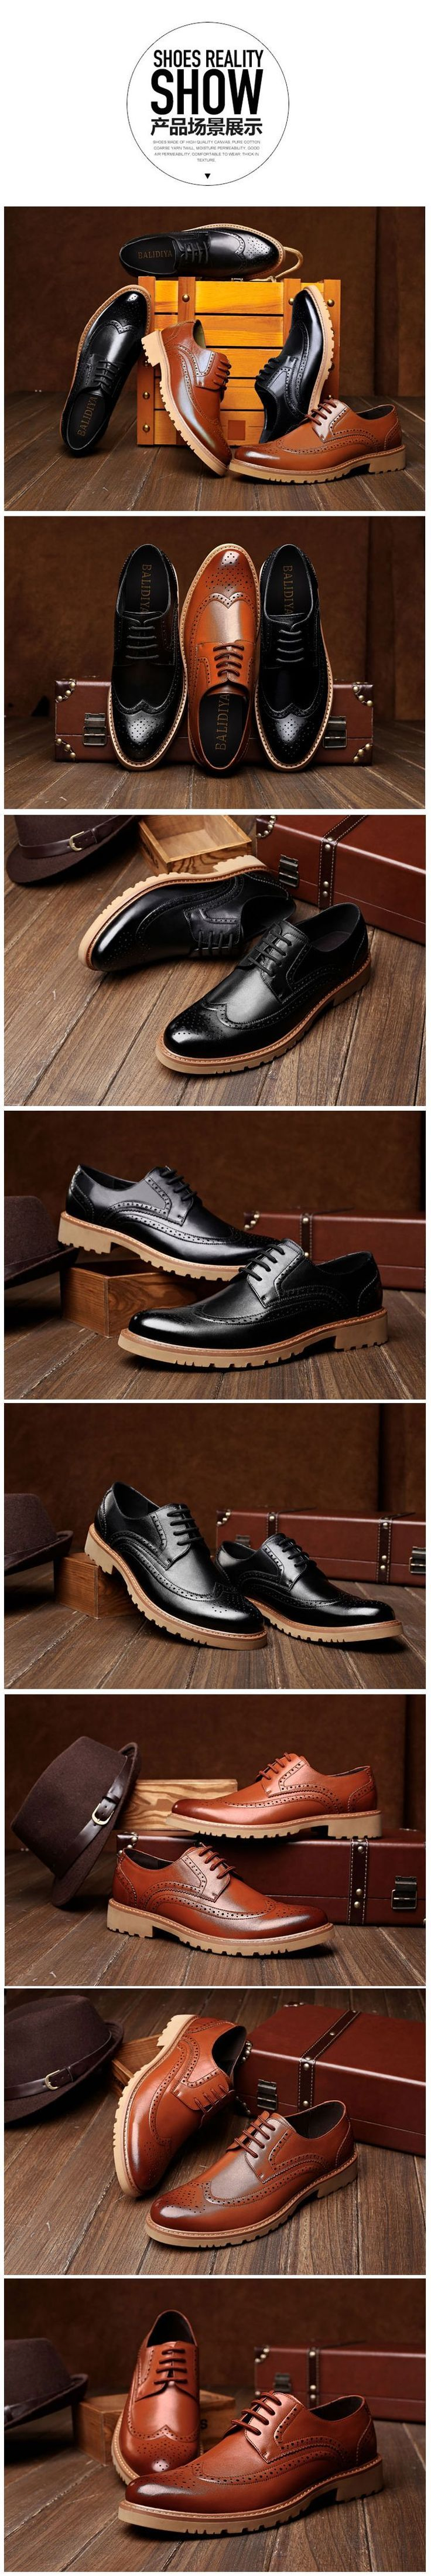 Baroque Oxfords Retro Brogues Carving Elevator Dress shoes Height Increasing 8cm / 3.15inches - cheap mens shoes, mens discount shoes, mens shoes casual